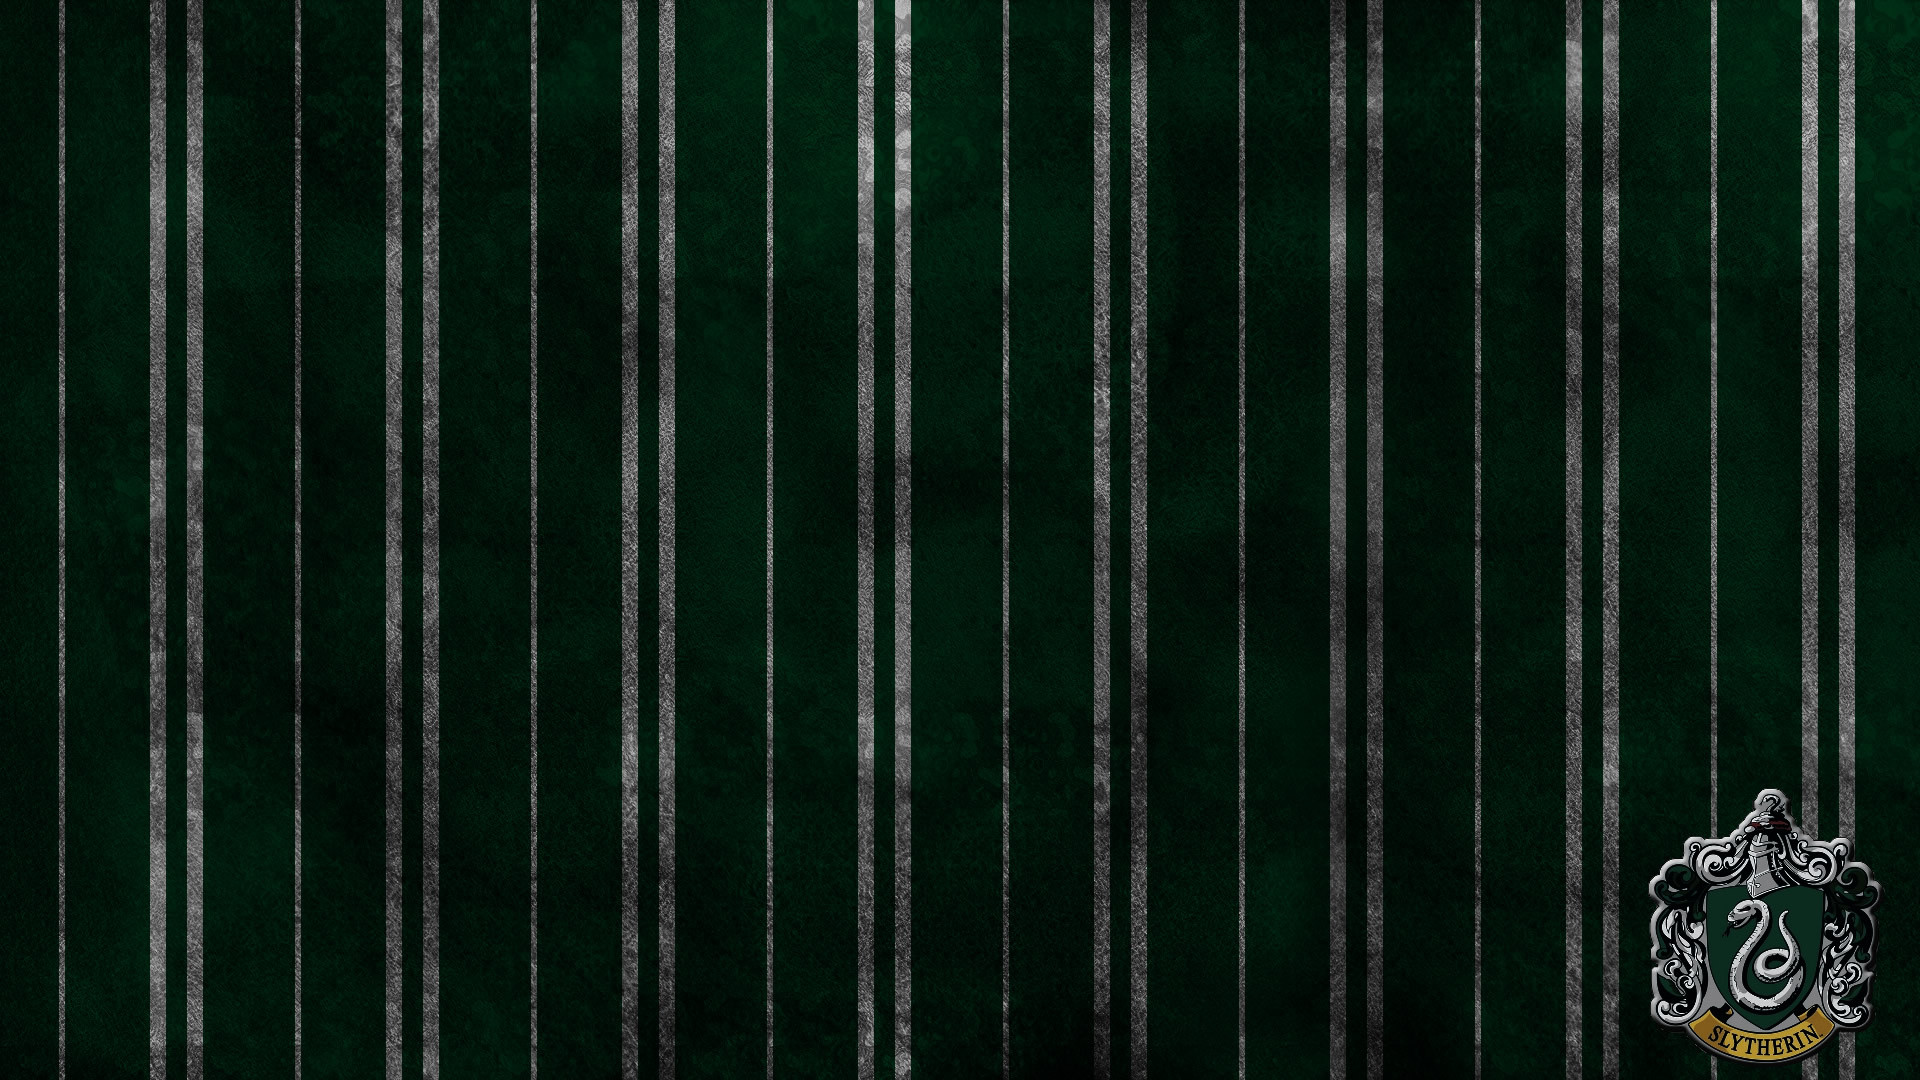 slytherin wallpapers hd stay | staywallpaper